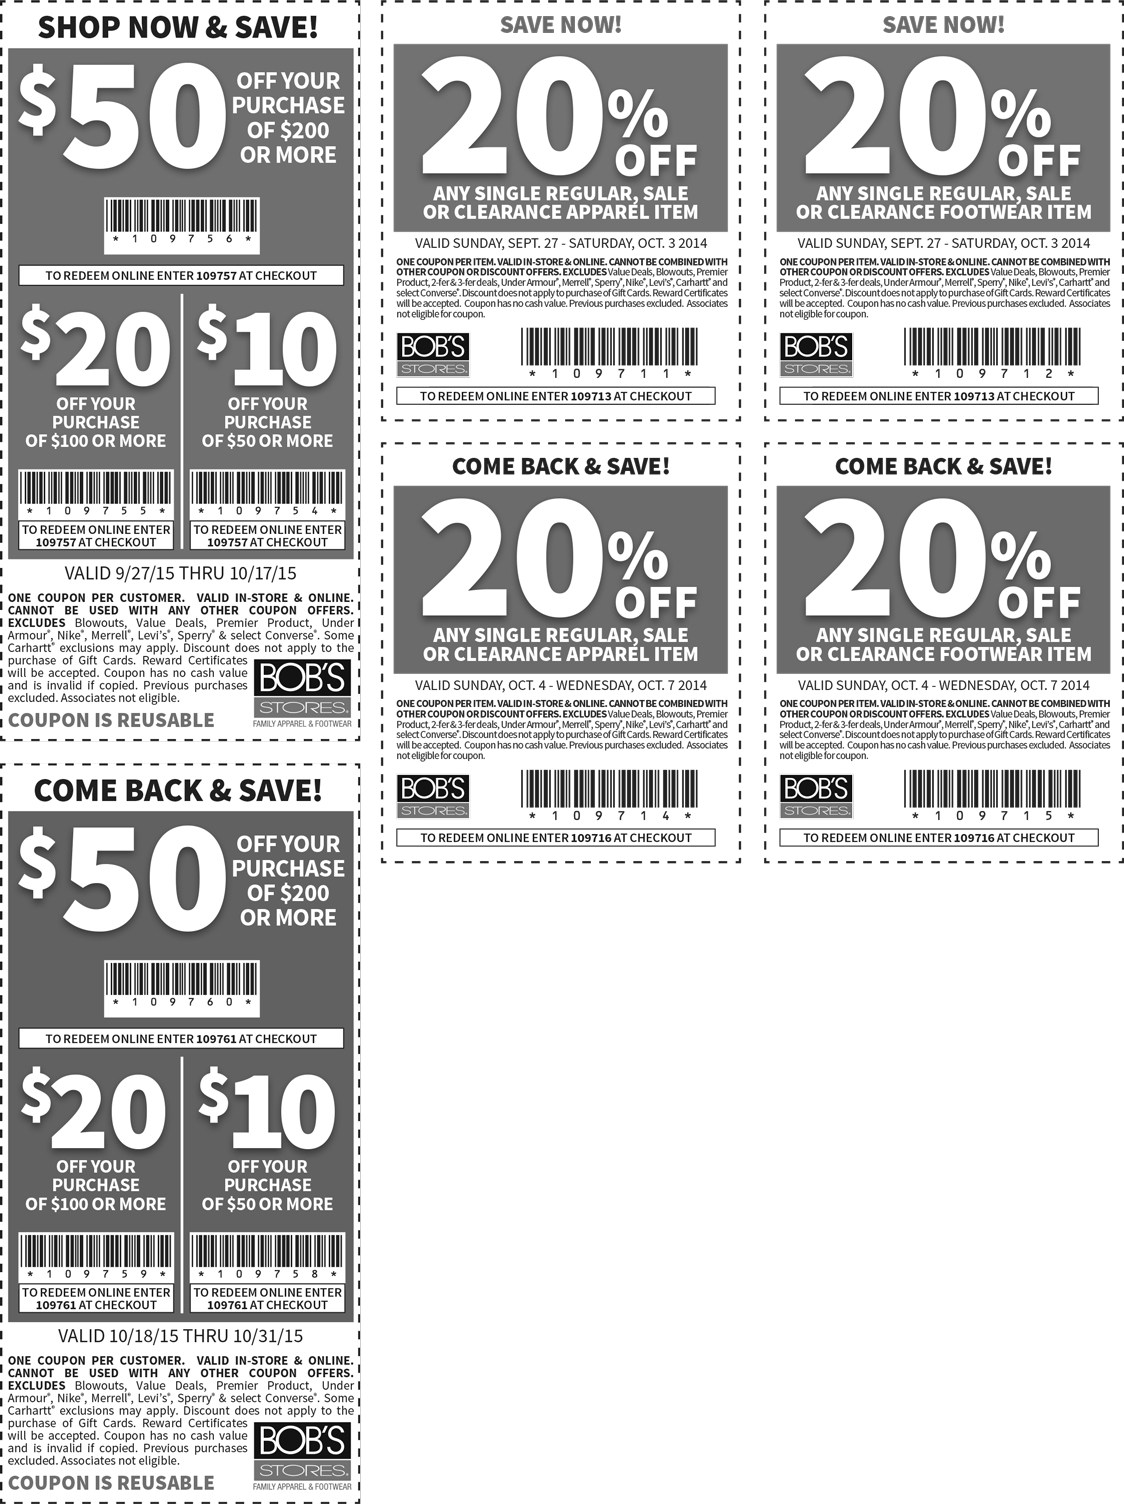 Bobs Stores Coupon November 2018 $10 off $50 & more at Bobs Stores, or online via promo code 109757